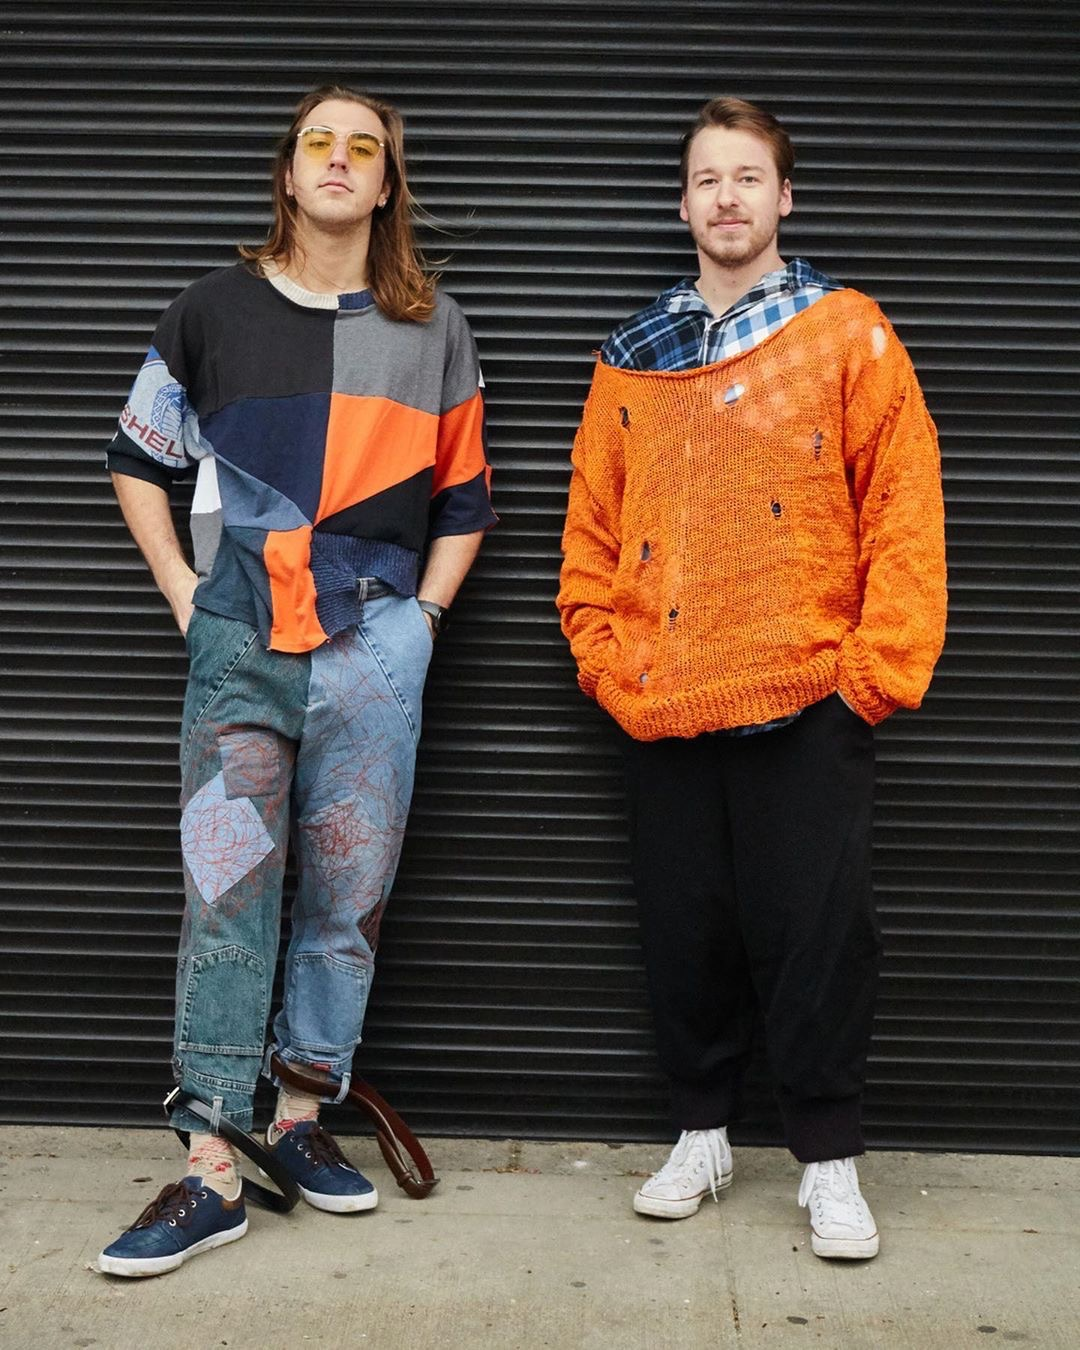 Two looks from Zachary Tatoczenko's collection. His collection won the Sportwear Award during the Kent State School of Fashion's Fashion Show 2.0. Photo by Gabriella Kingston.